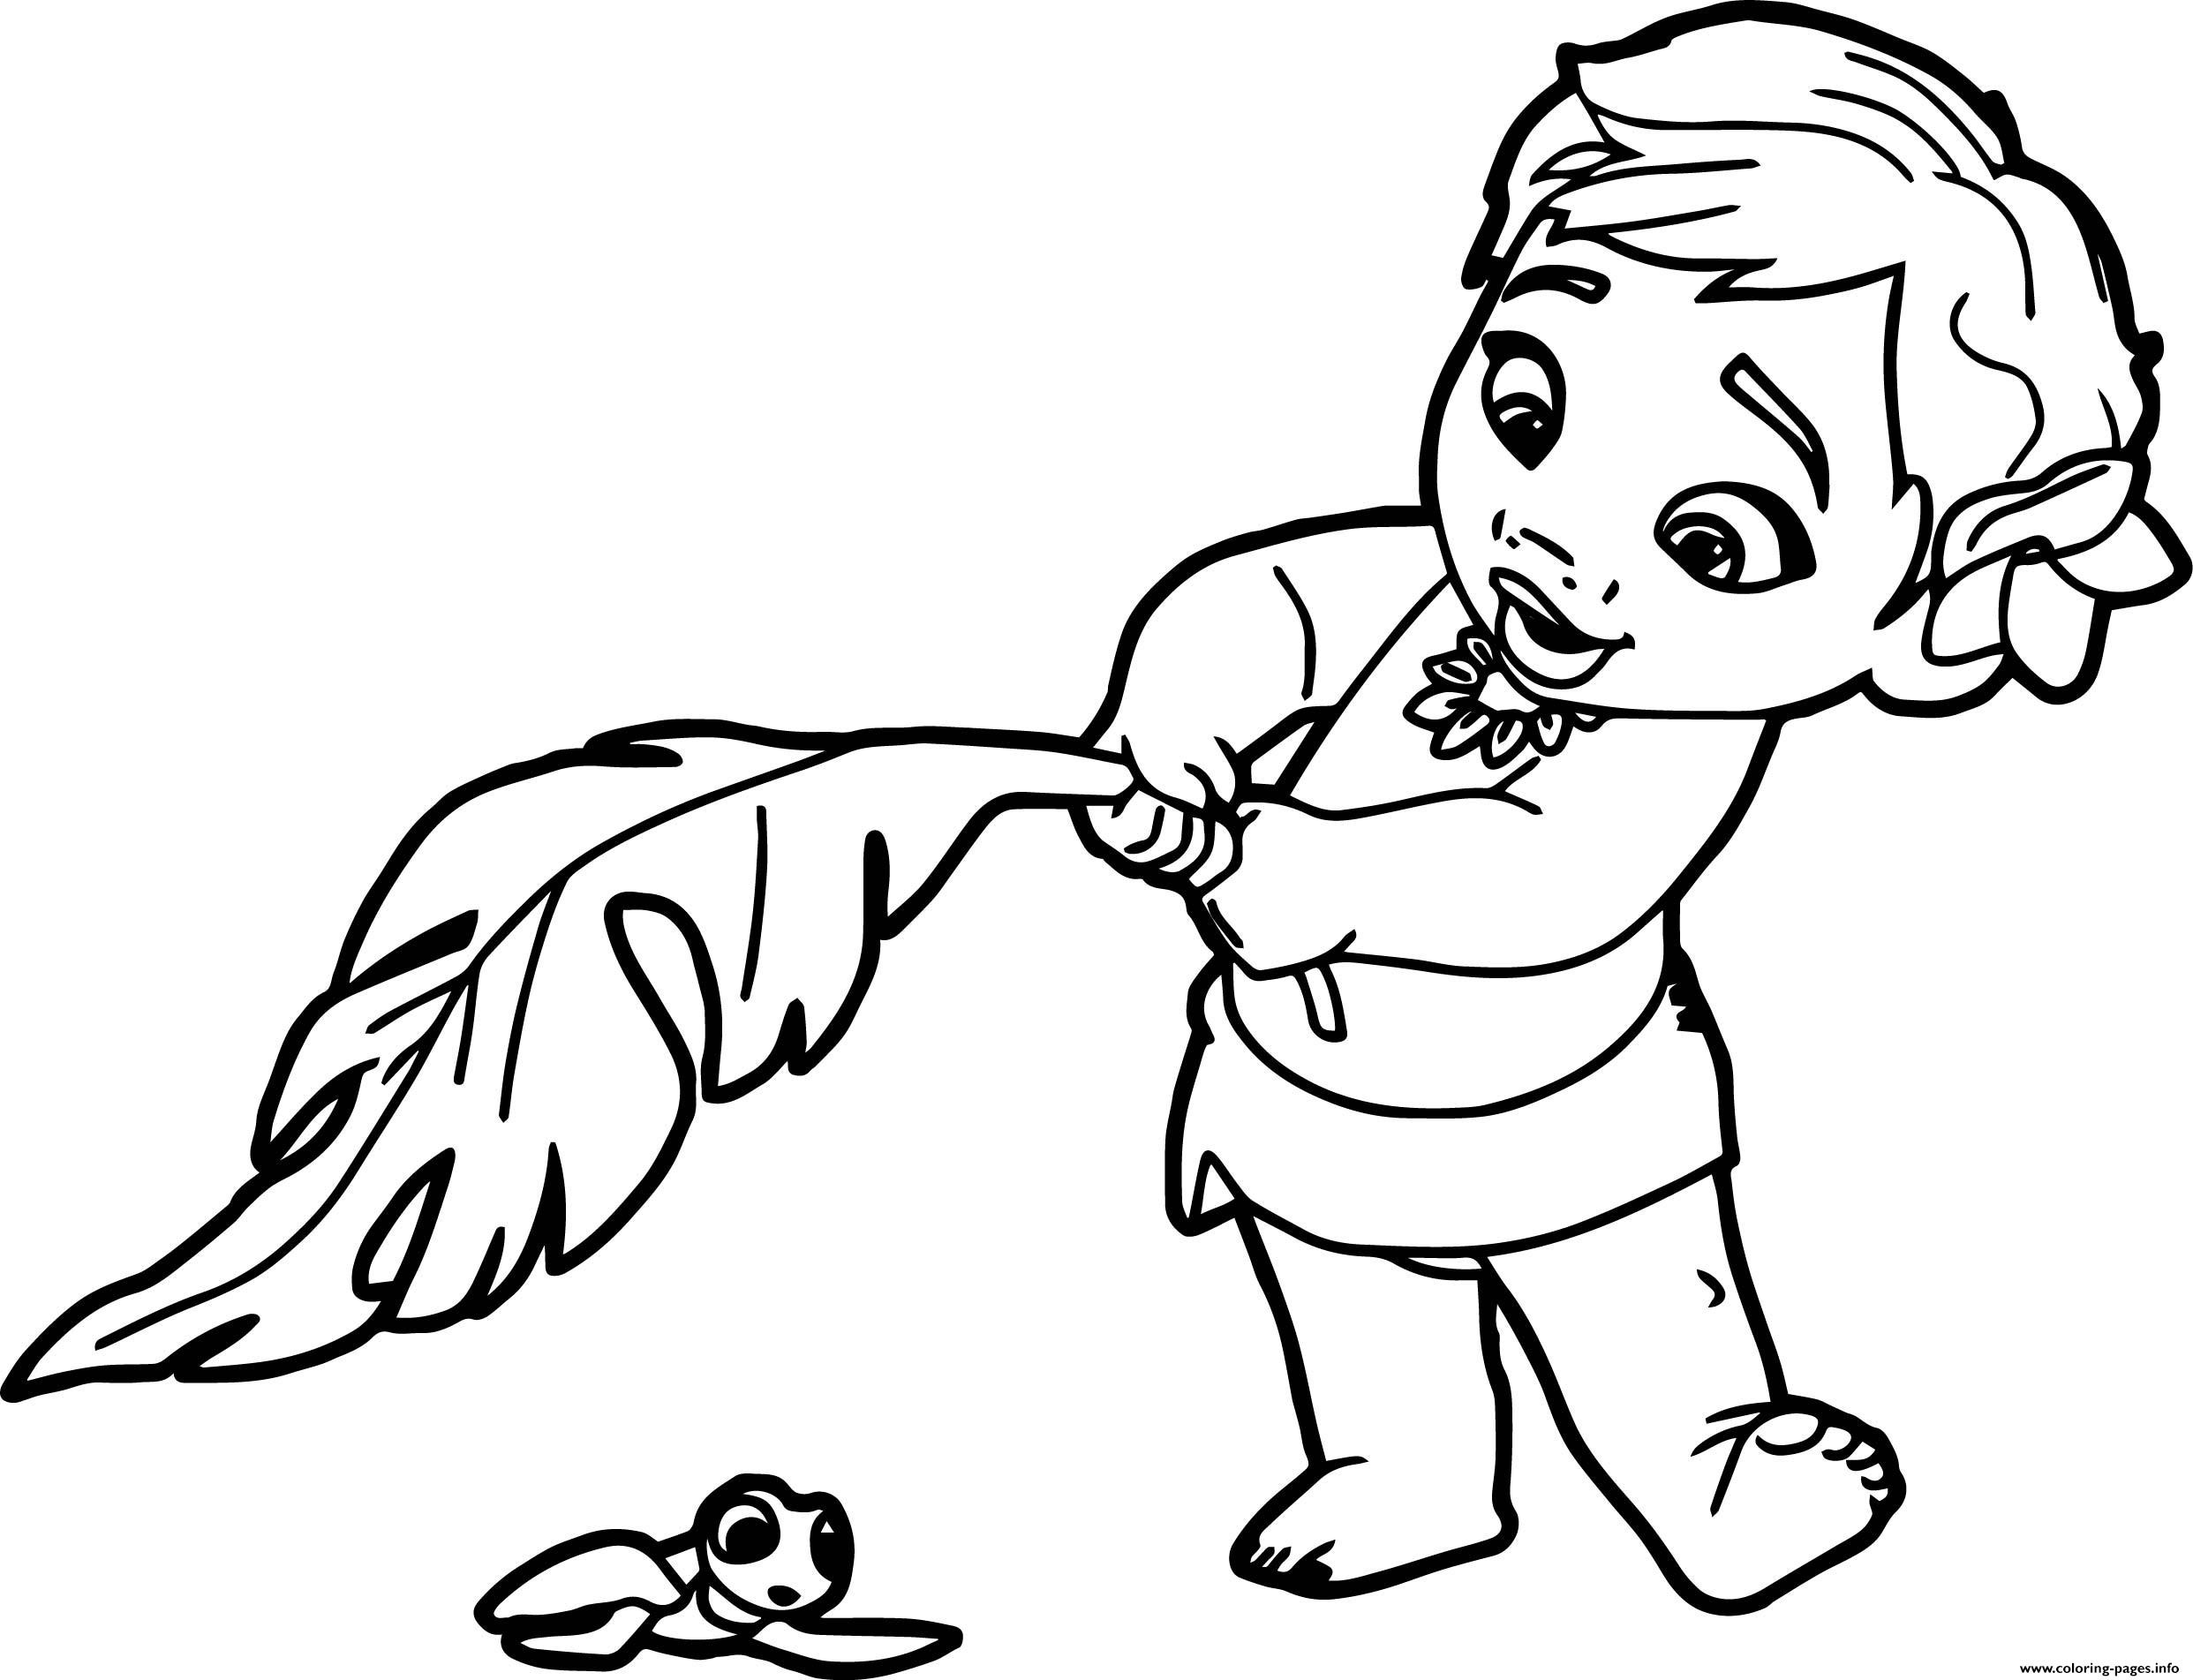 Moana Baby Coloring Pages  Baby Moana Princess Disney Coloring Pages Printable